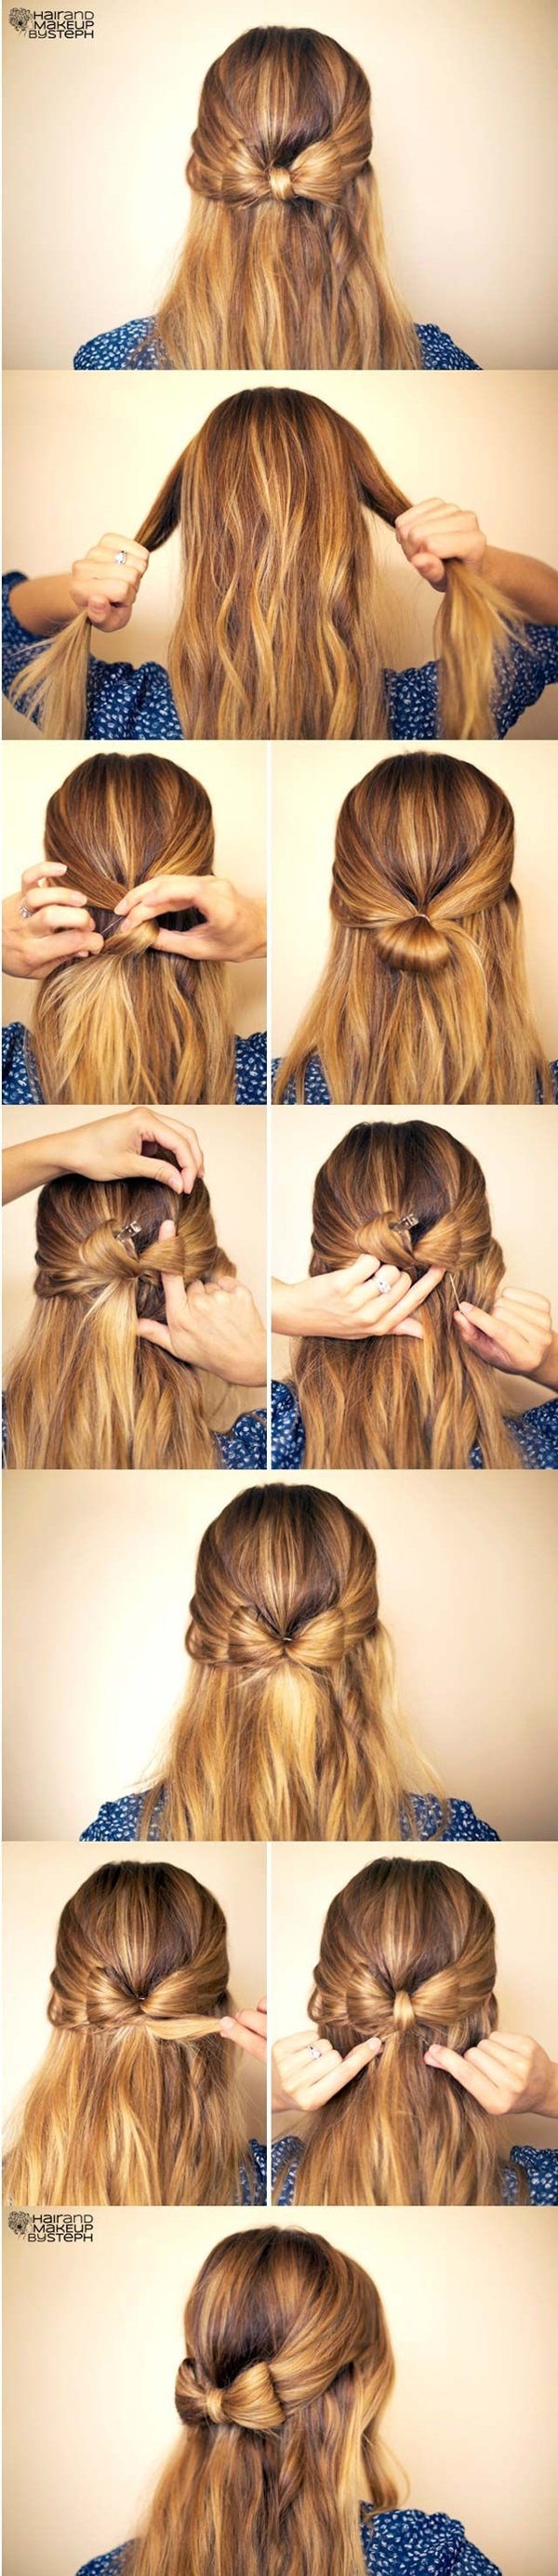 Simple Five Minute Hairstyles (50)